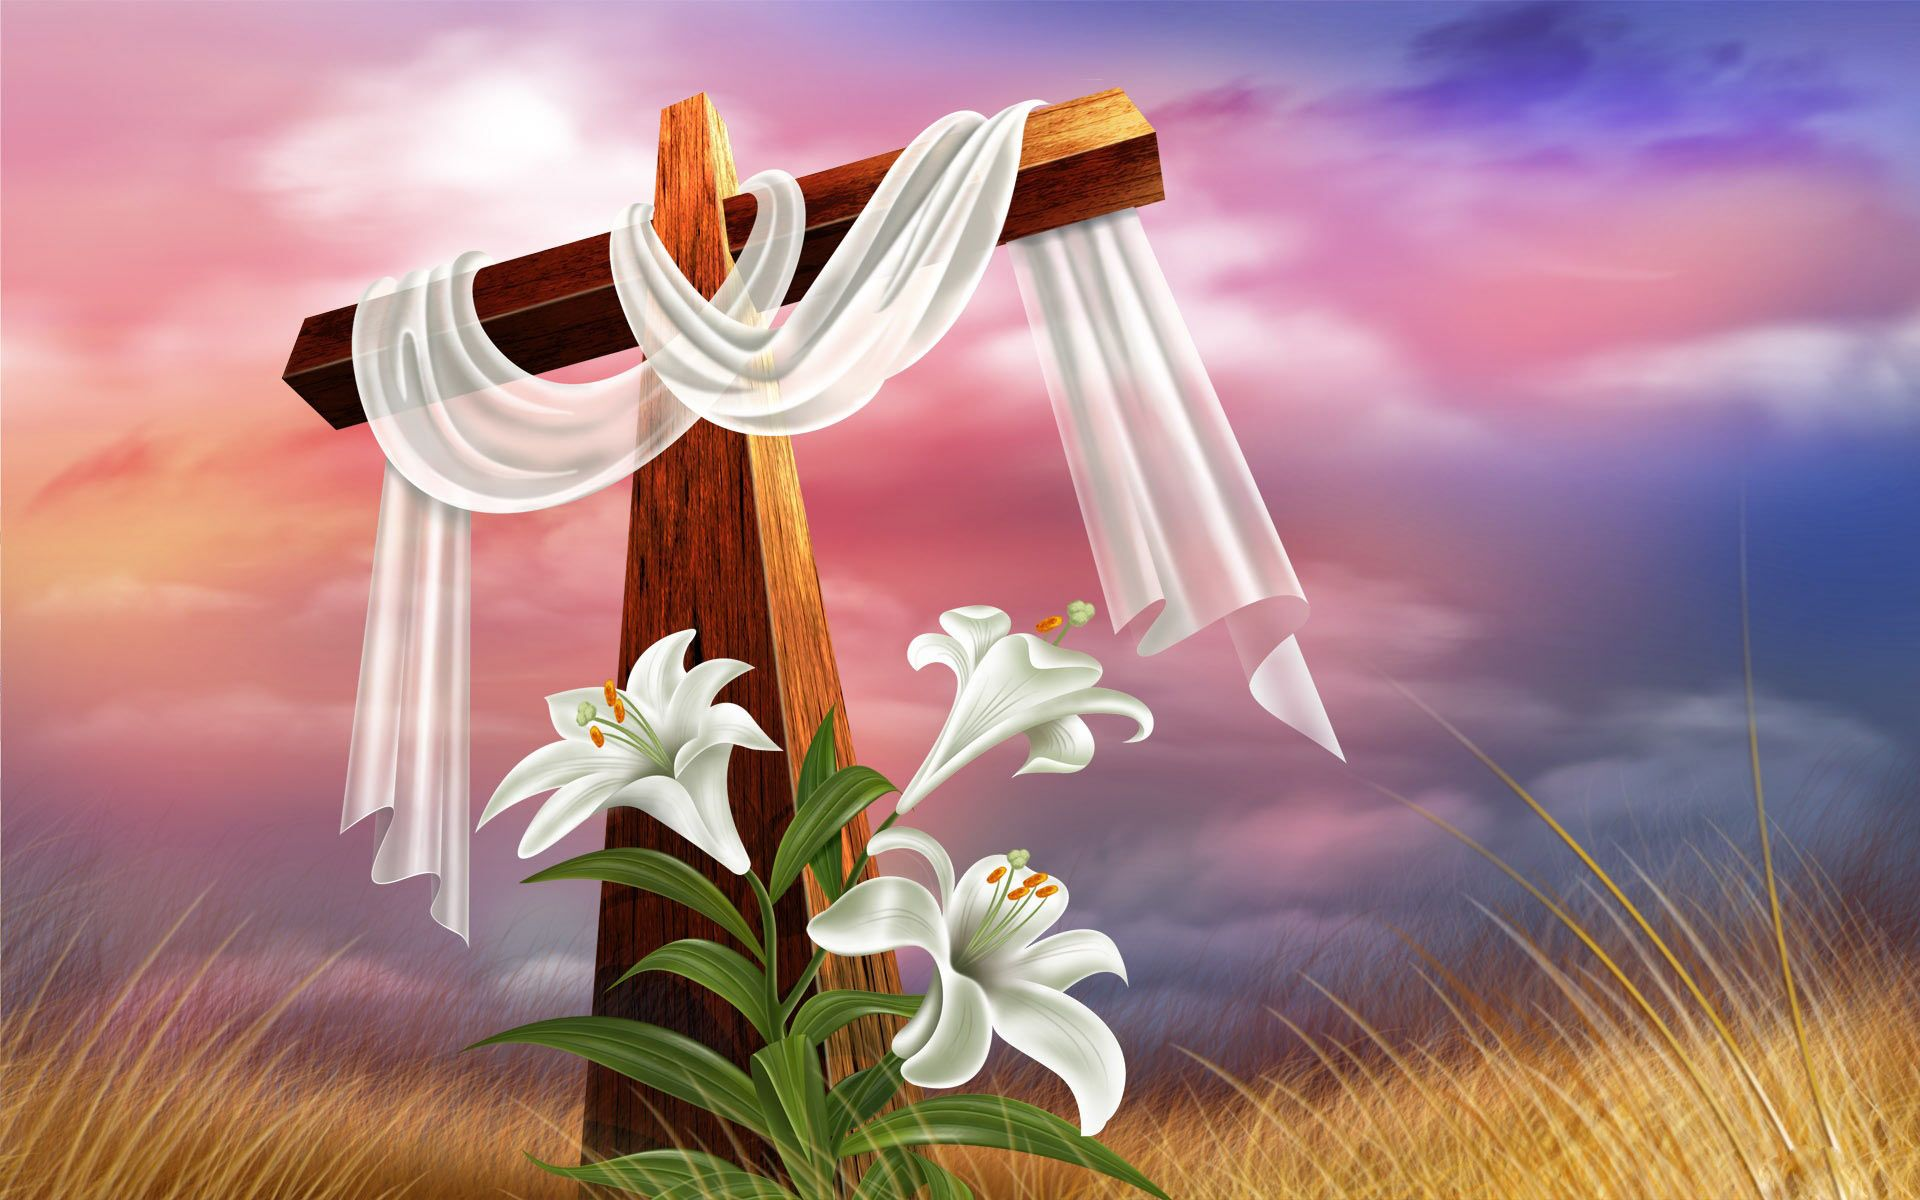 Jesus #Christ #Cross #Design #Art 3D #Wallpaper | 3D Wallpapers ...